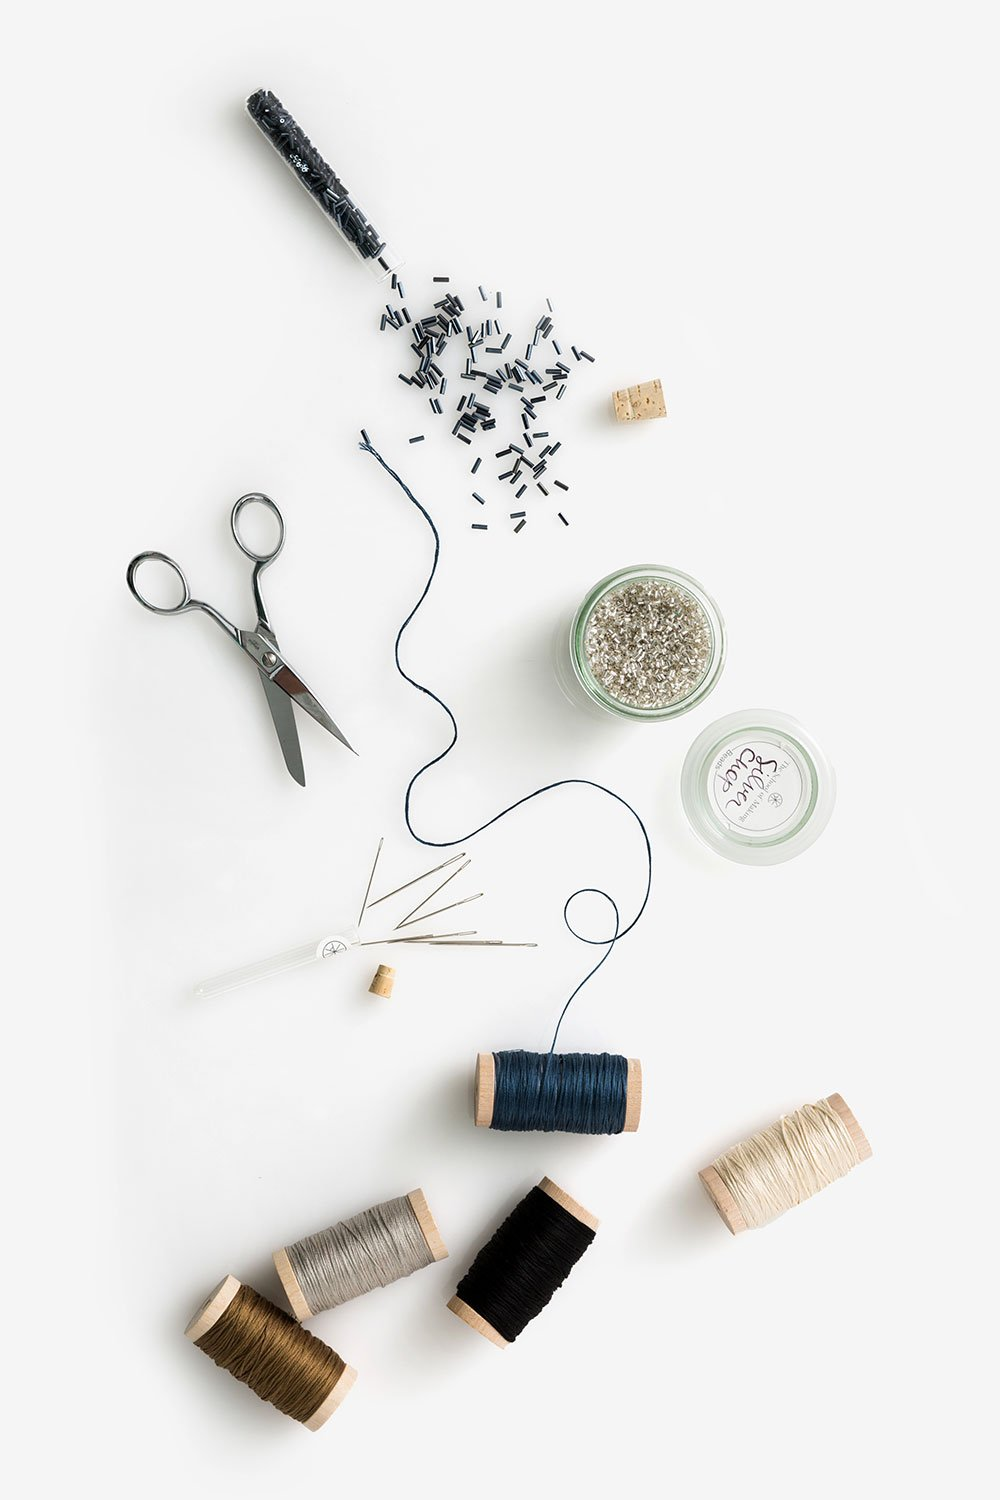 The-School-of-Making-Maker-Supplies